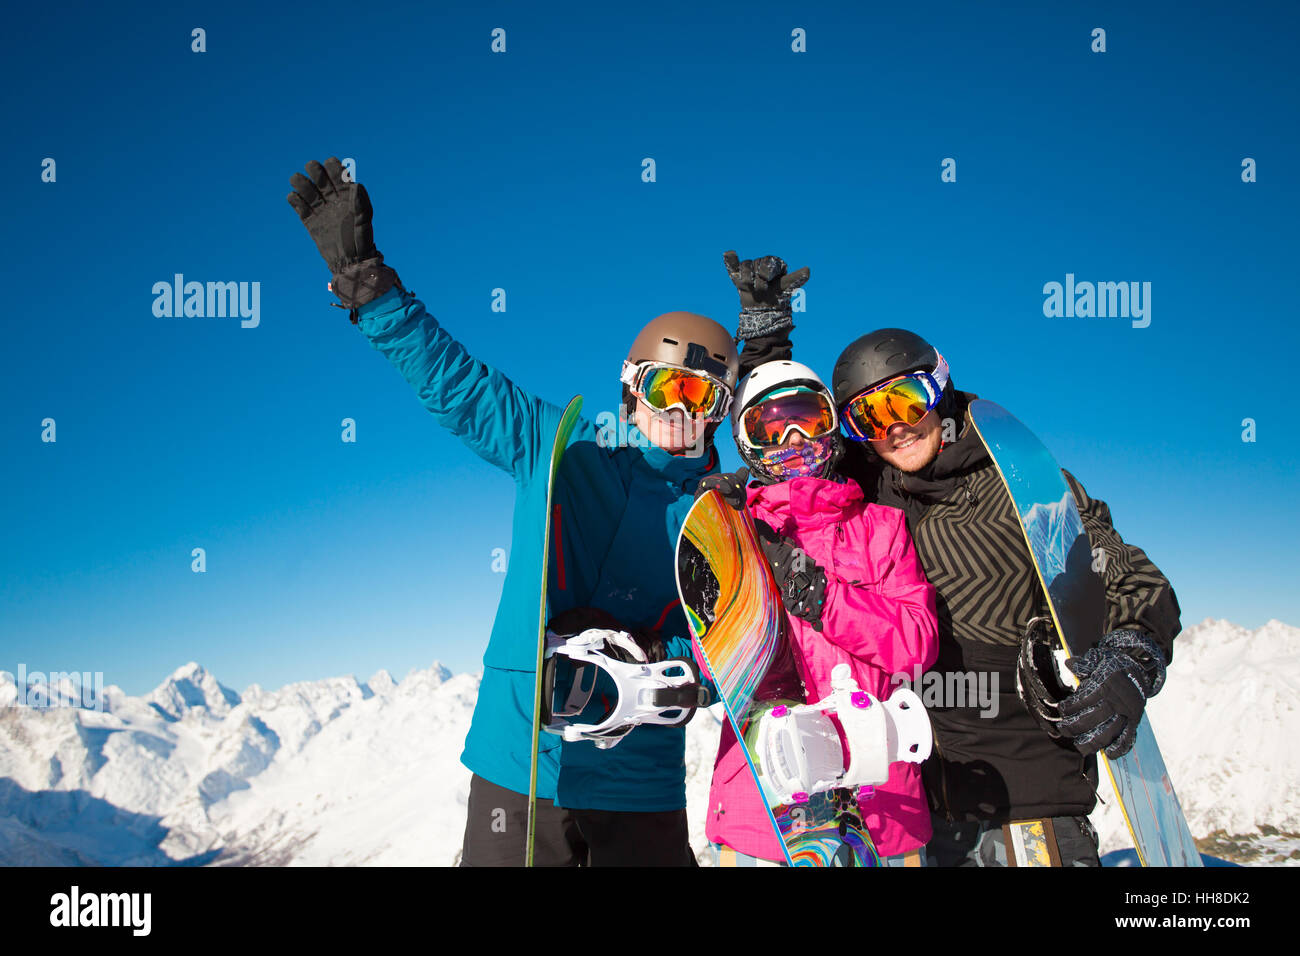 Group friends snowboarders have fun on the slope - Stock Image